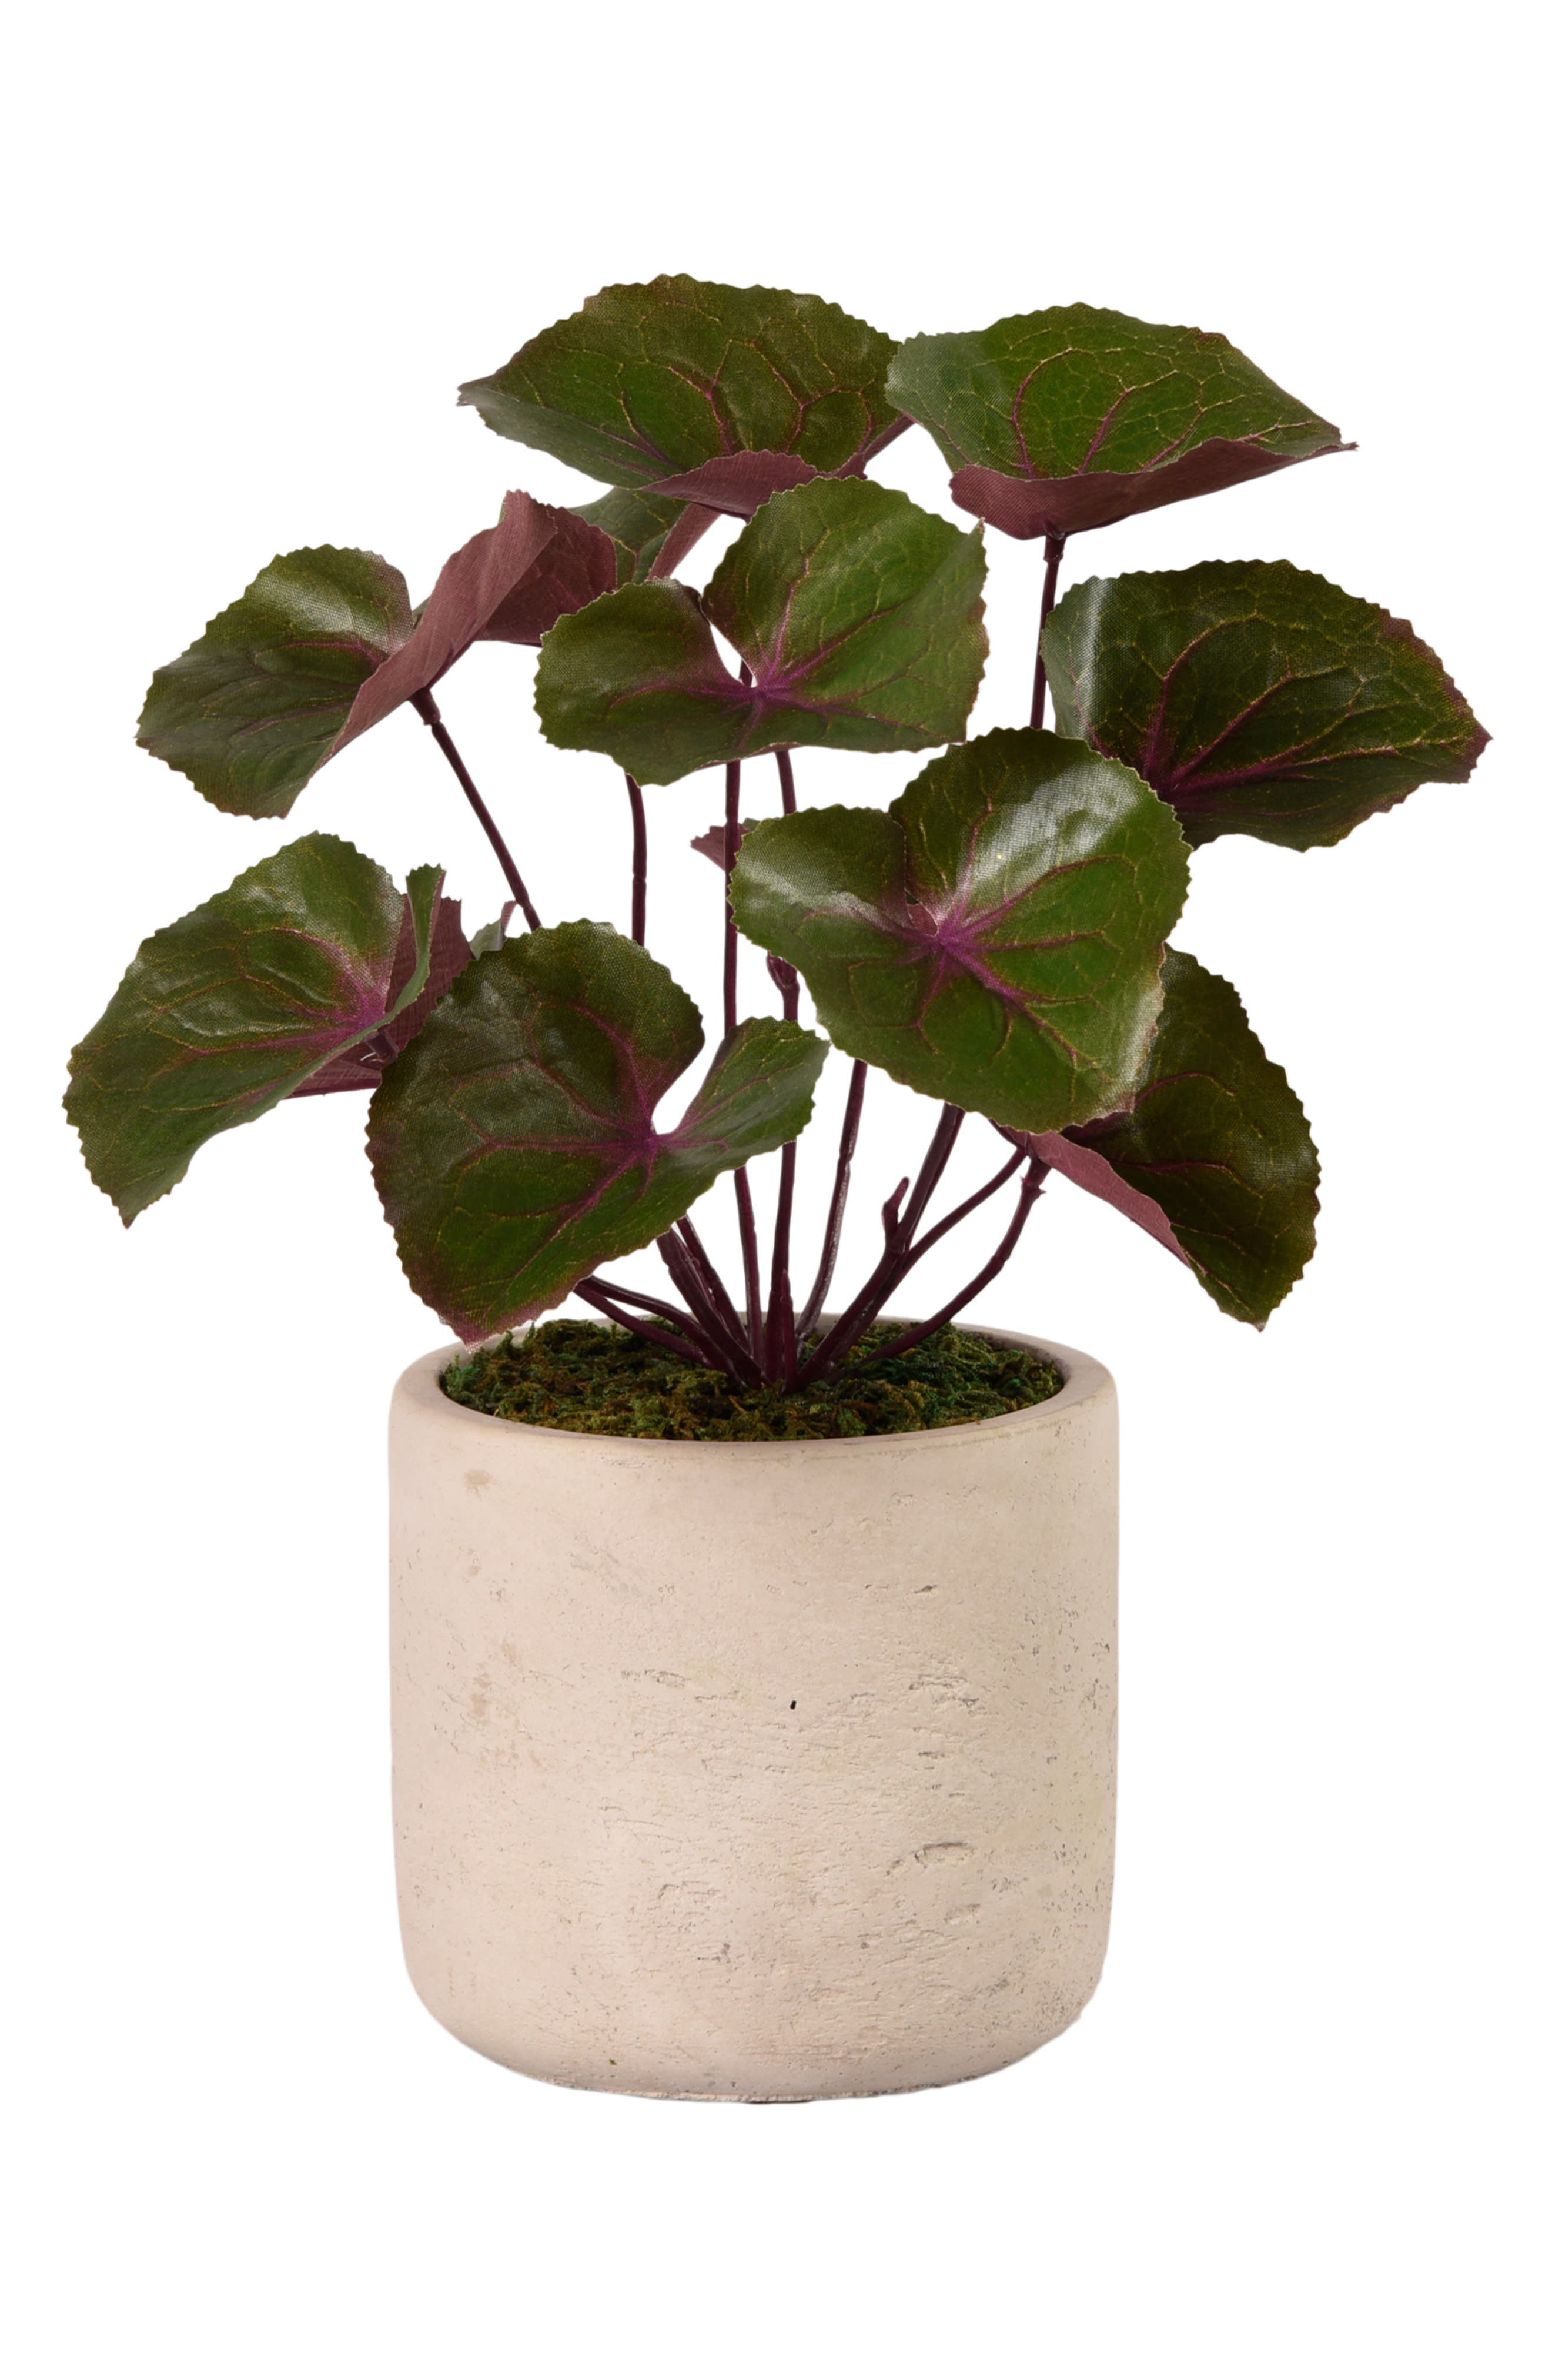 No need for a green thumb when you\\\'ve got this charming florist-designed faux ligularia plant sitting cheerily in a textured concrete pot. The design serves as a perfect complement to any modern or industrial-chic decor. Style Name: Bloomr Ligularia Planter Decoration. Style Number: 5889119. Available in stores.